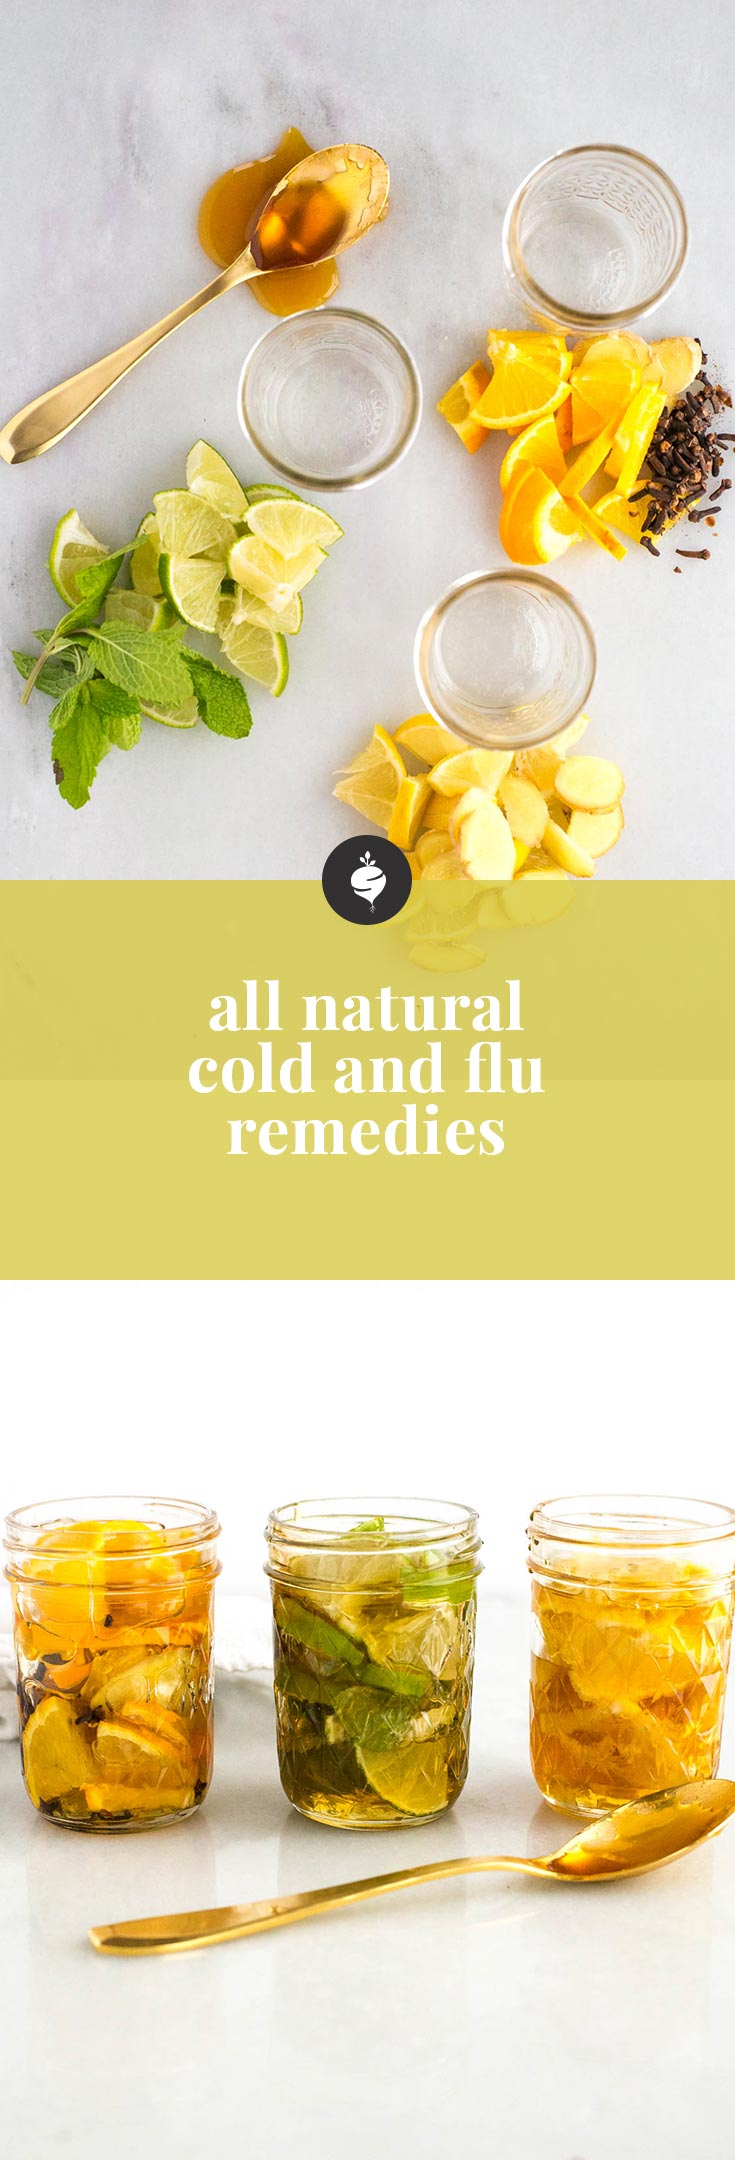 The only all natural cold and flu remedy you need and made from ingredients you have at home.